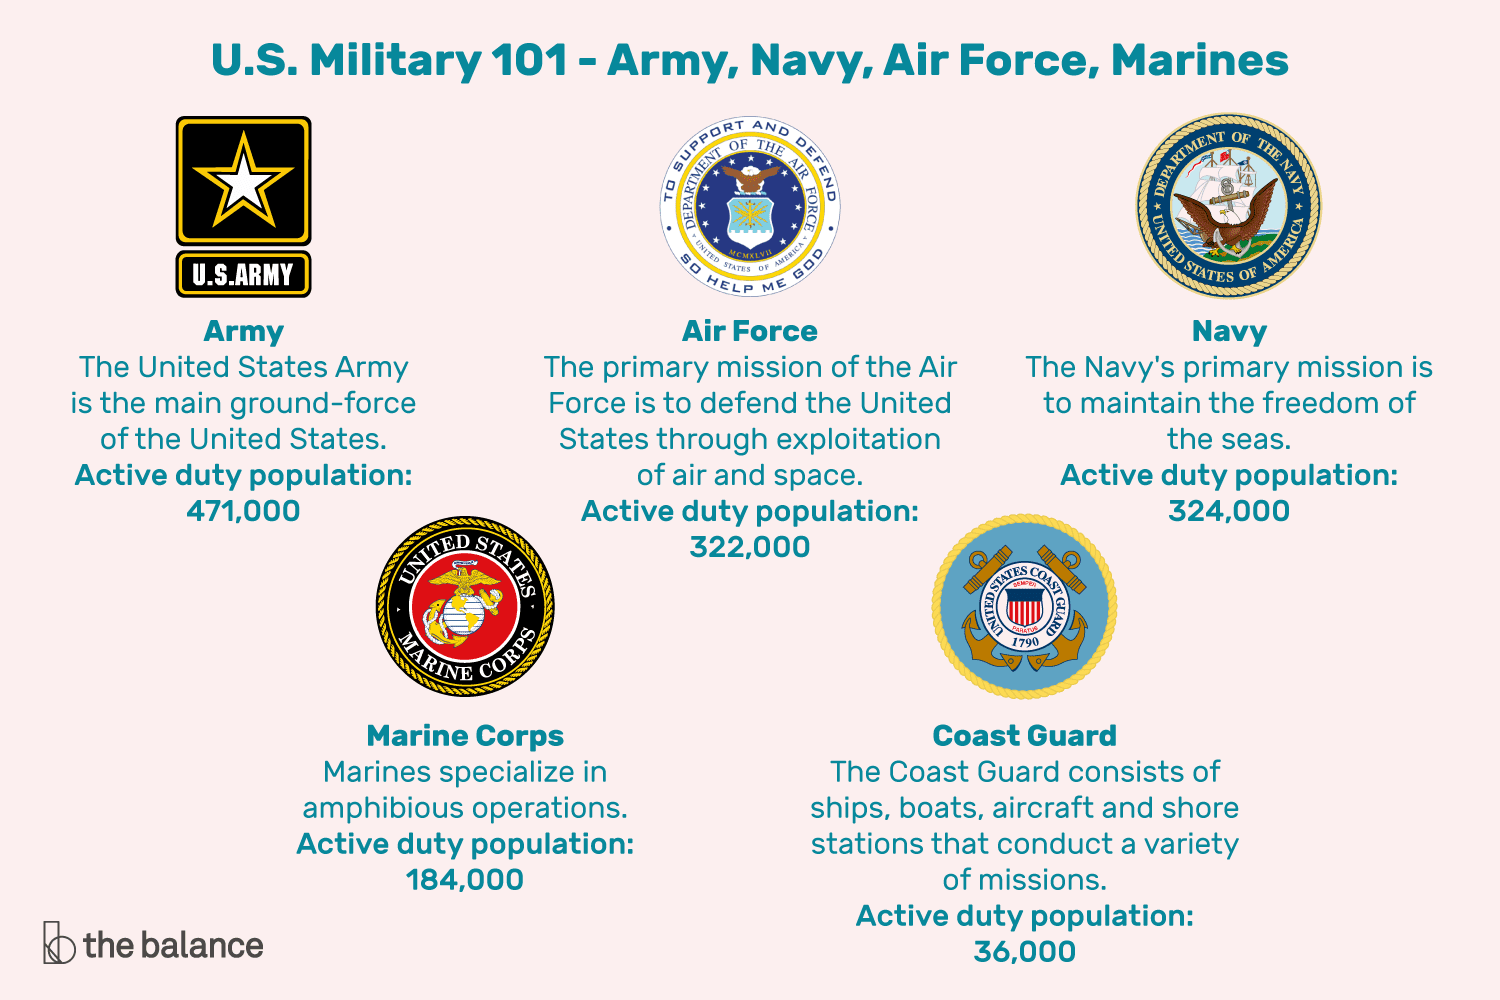 U S  Military 101 - Army, Navy, Air Force, Marines and Coast Guard